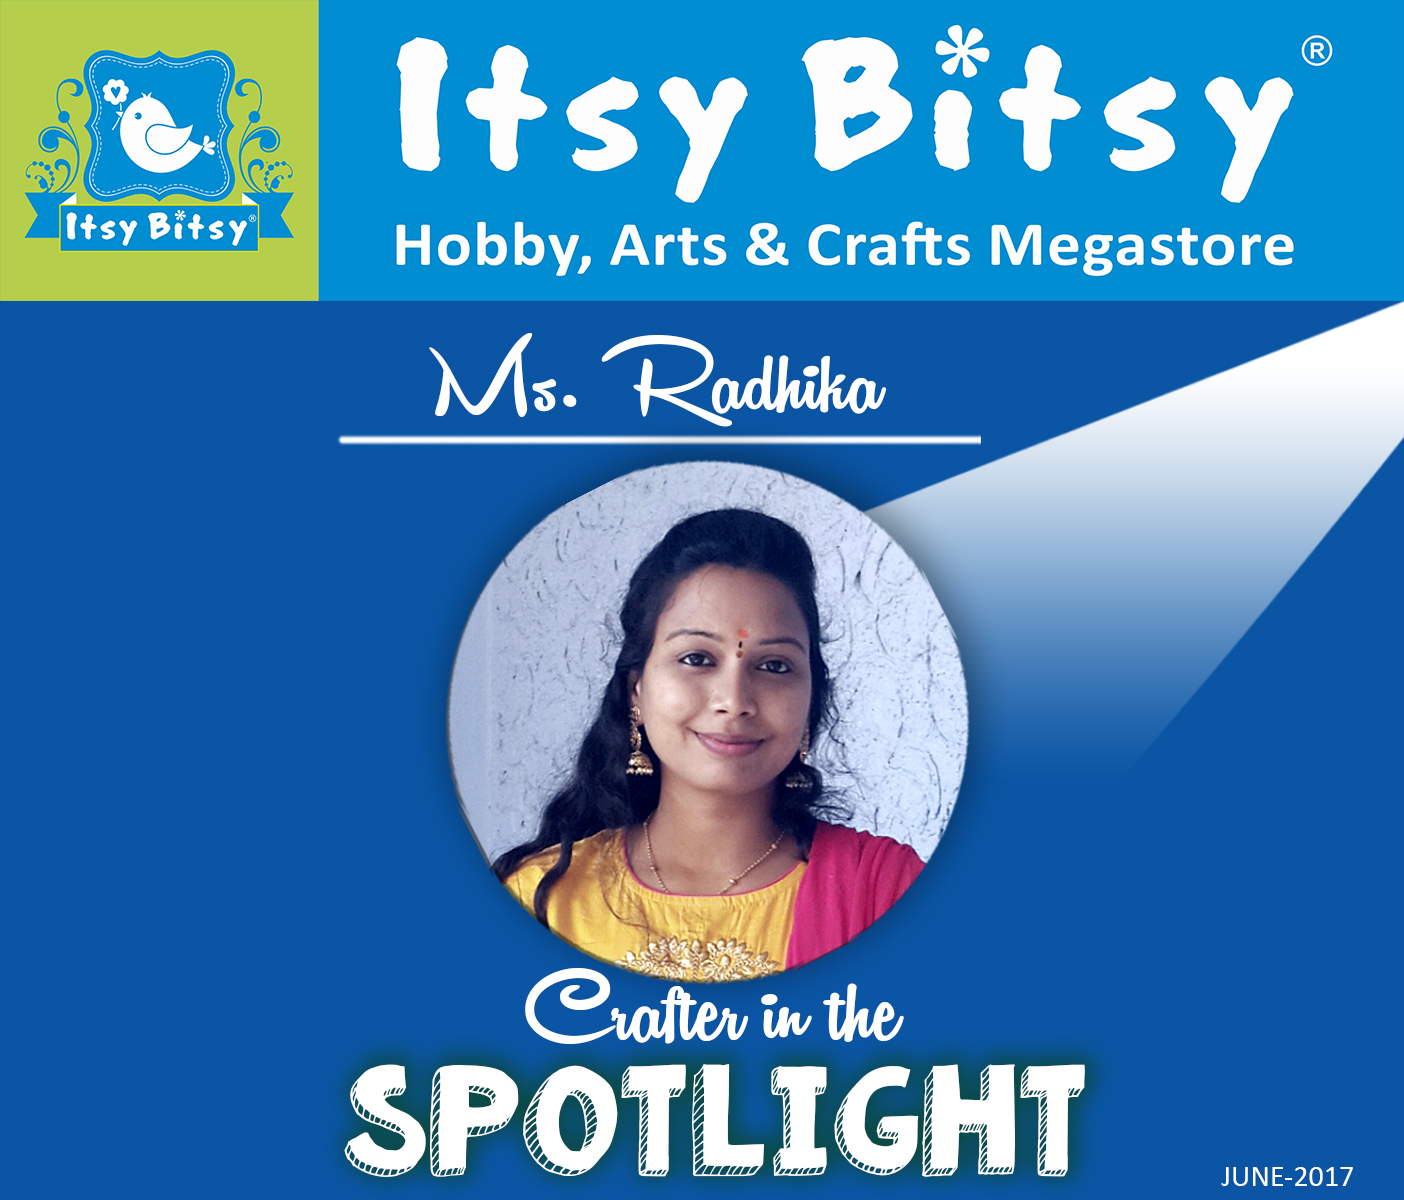 Itsybitsy crafter in the Spotlight June 2017